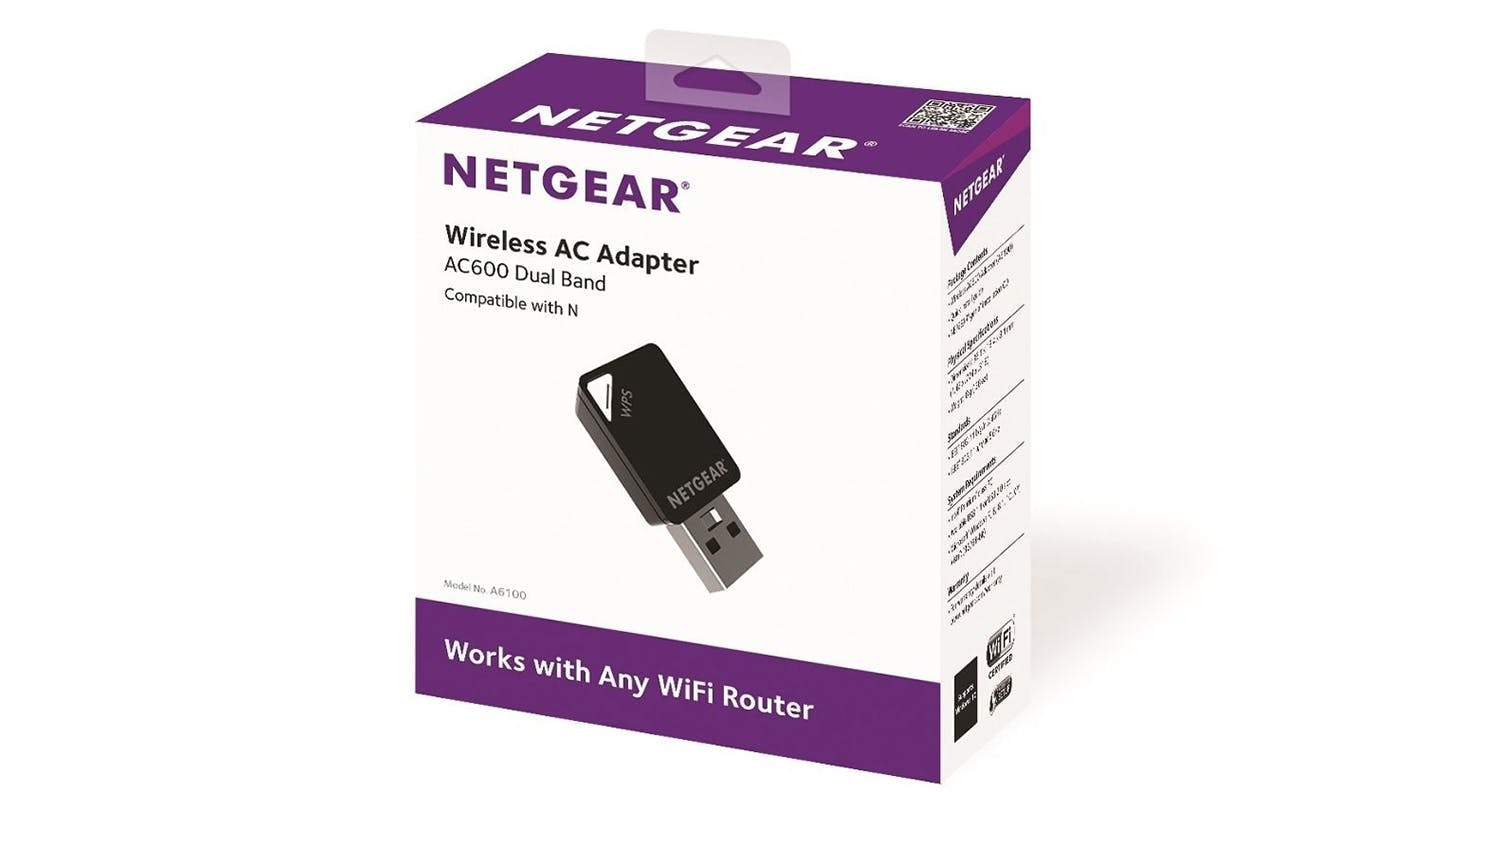 Netgear AC600 Mini Wireless USB Adapter